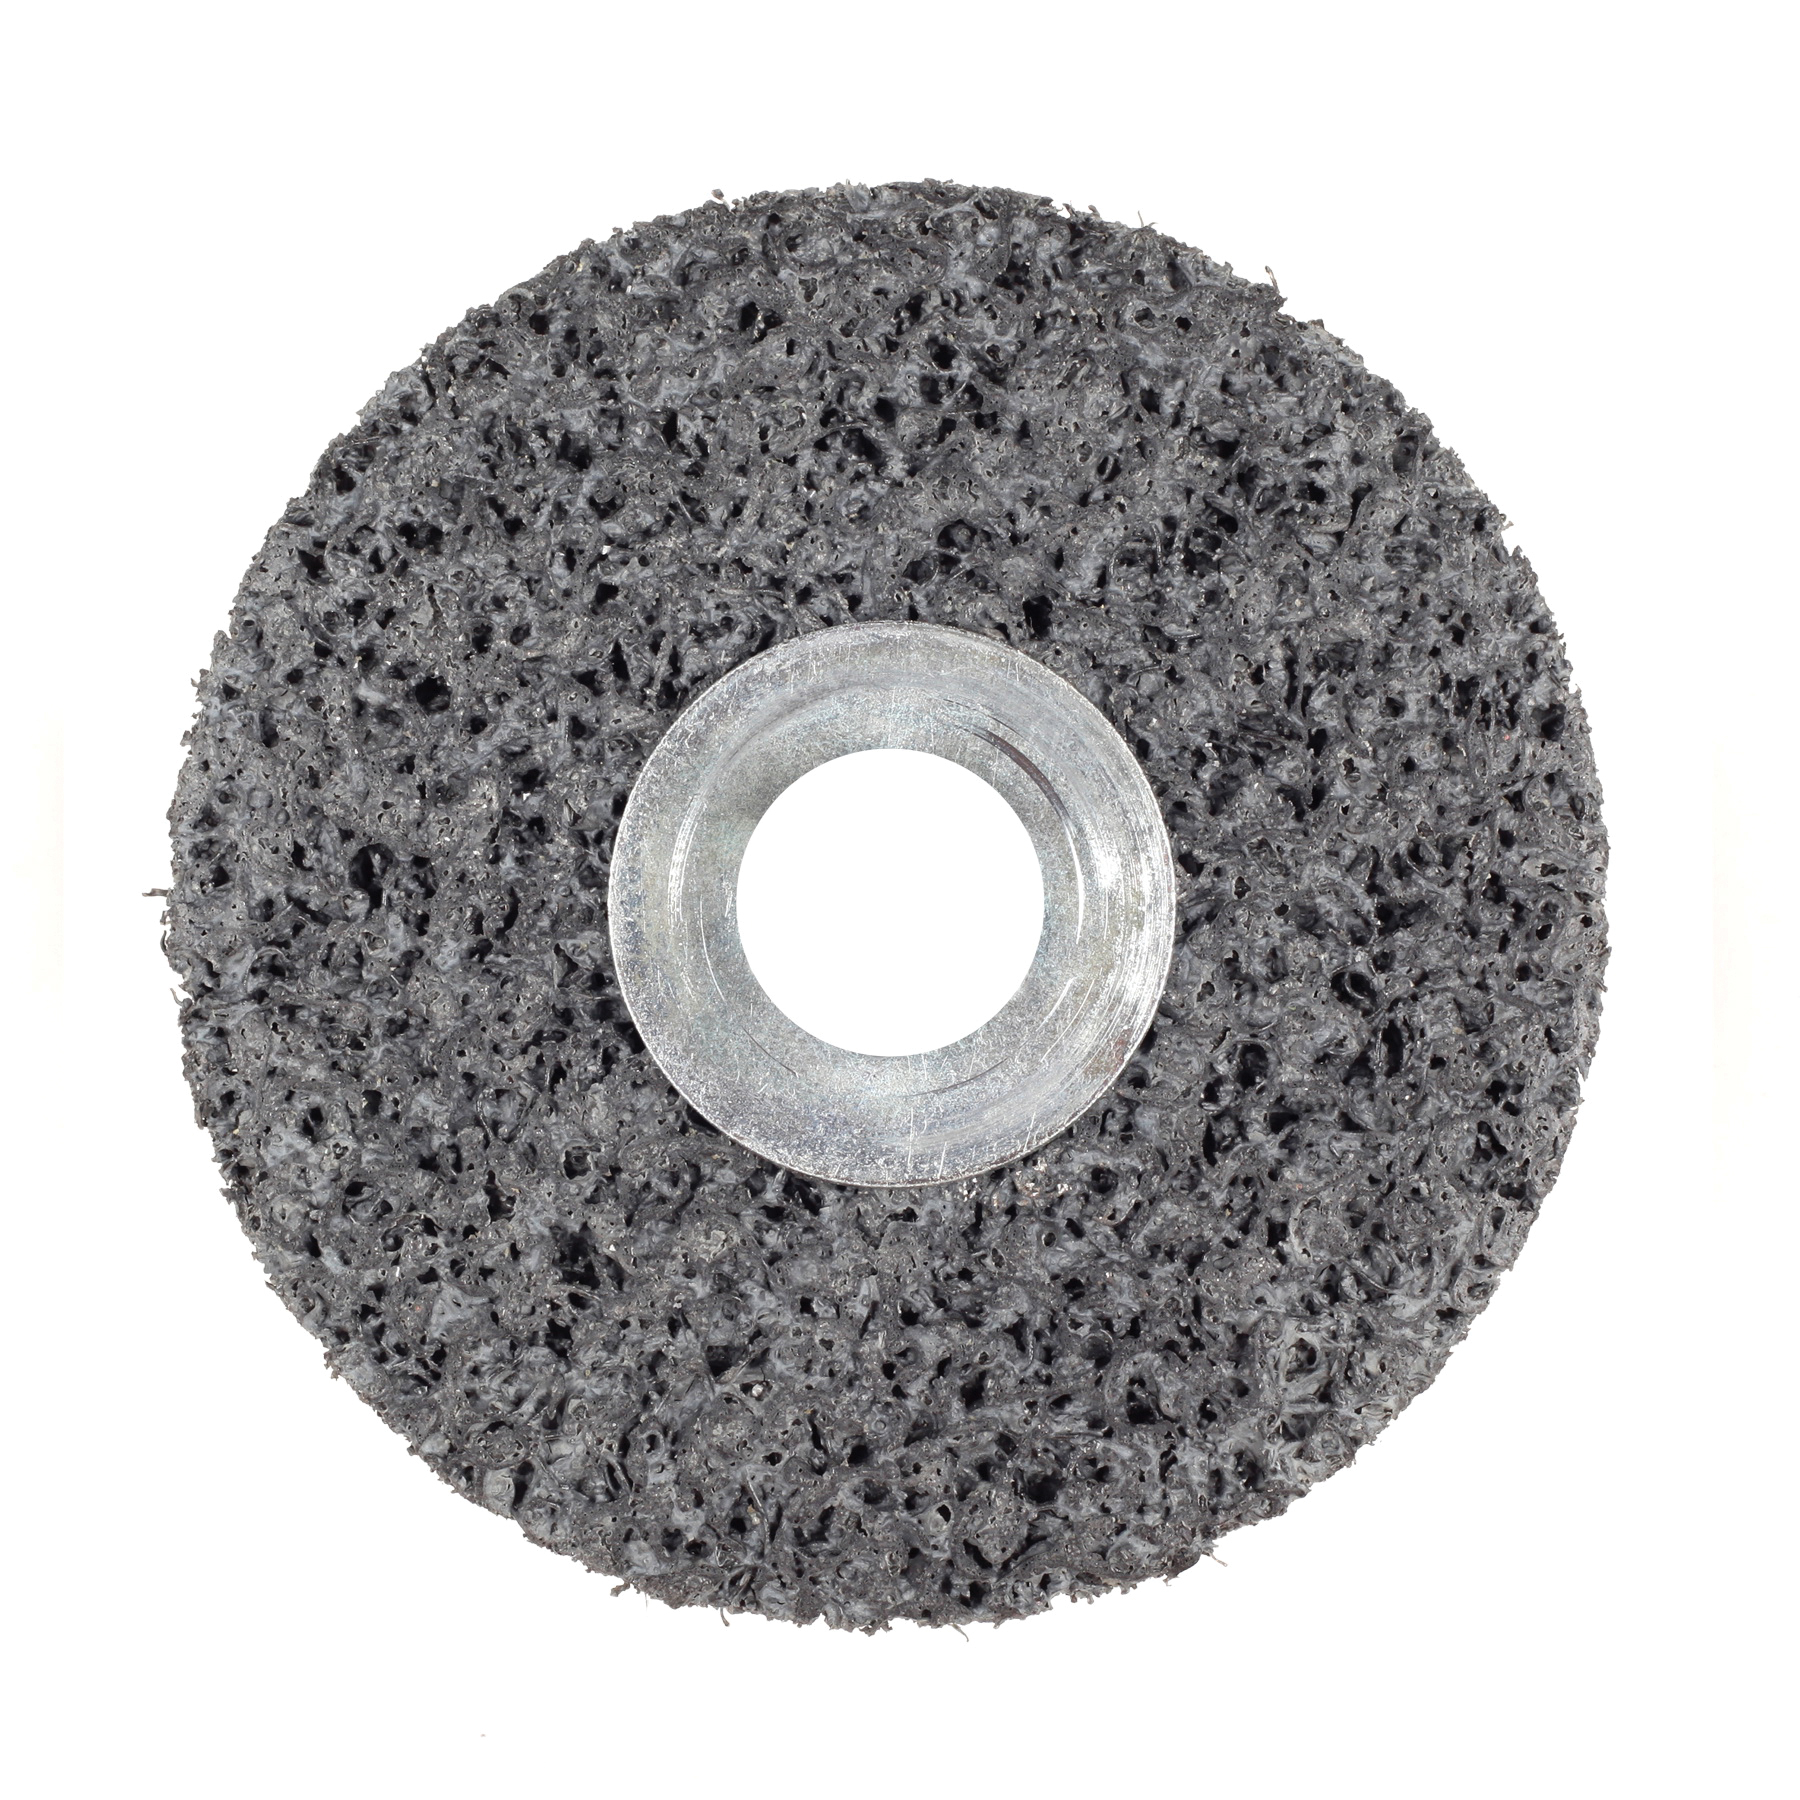 3M™ 048011-03728 CP-UW Cut and Polish Unitized Wheel, 3 in Dia Wheel, 1/4 in Center Hole, 1/4 in W Face, Medium Grade, Aluminum Oxide Abrasive